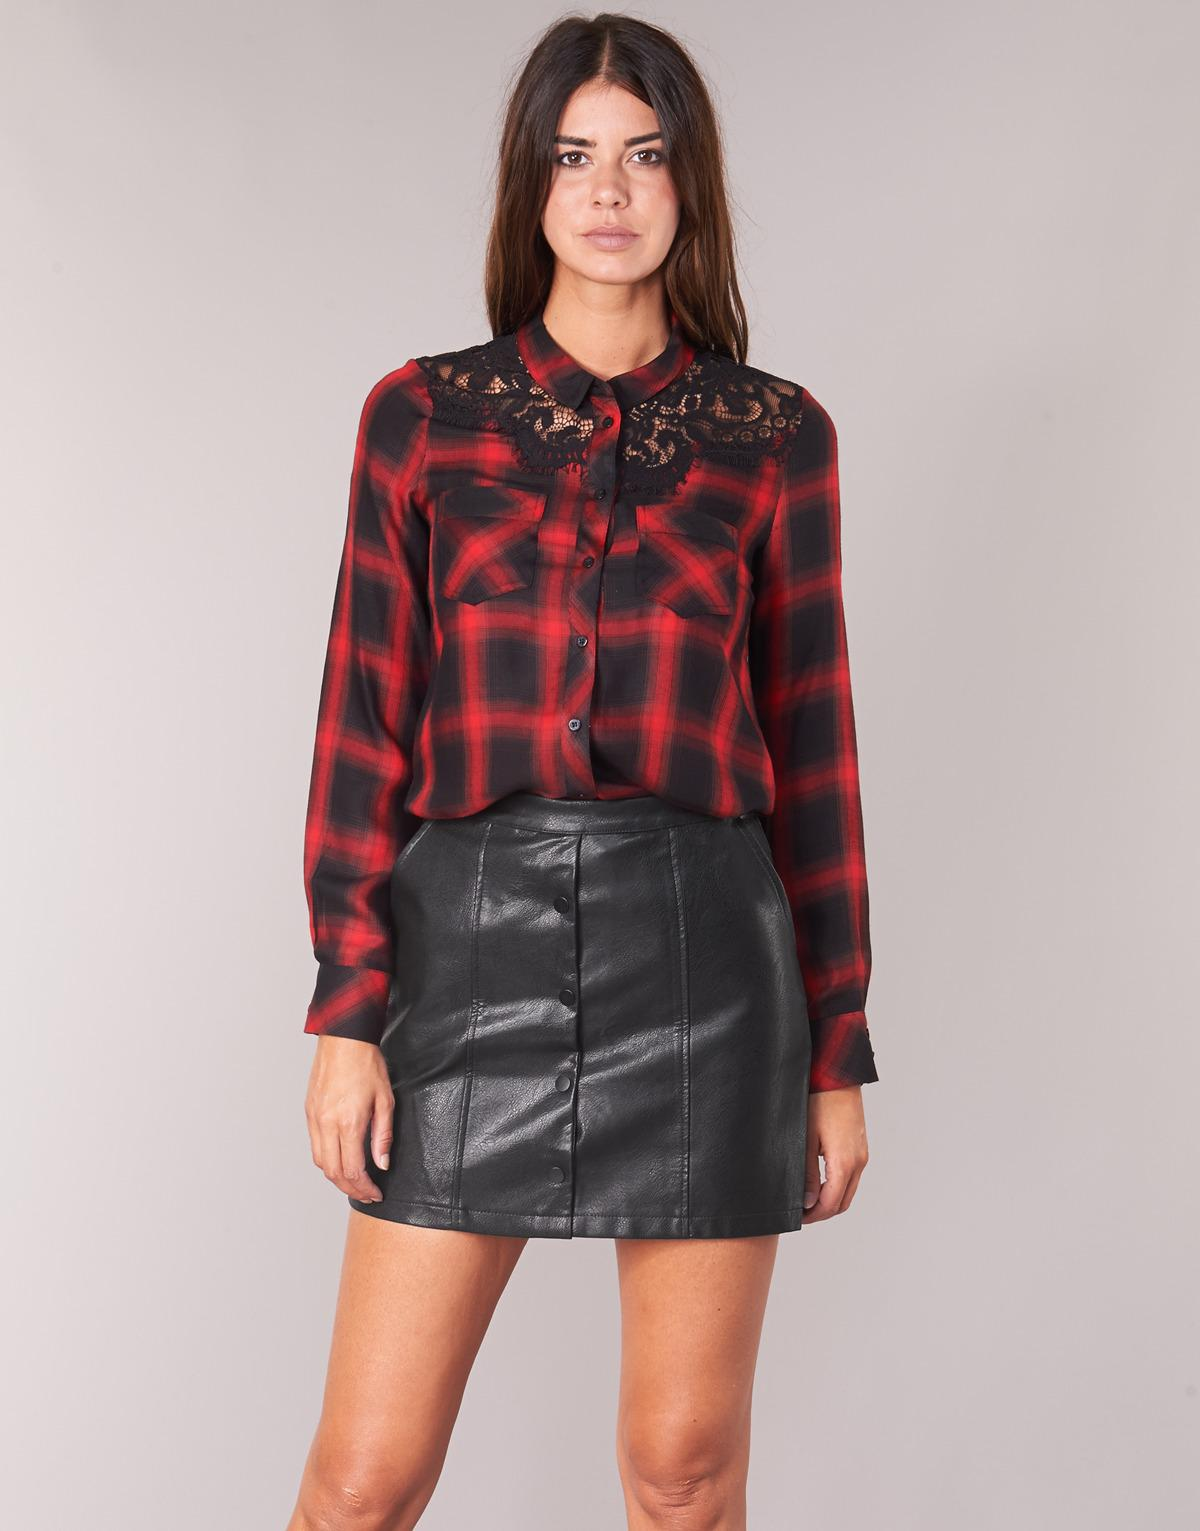 e2d66719192 Guess Domitille Shirt in Red - Lyst